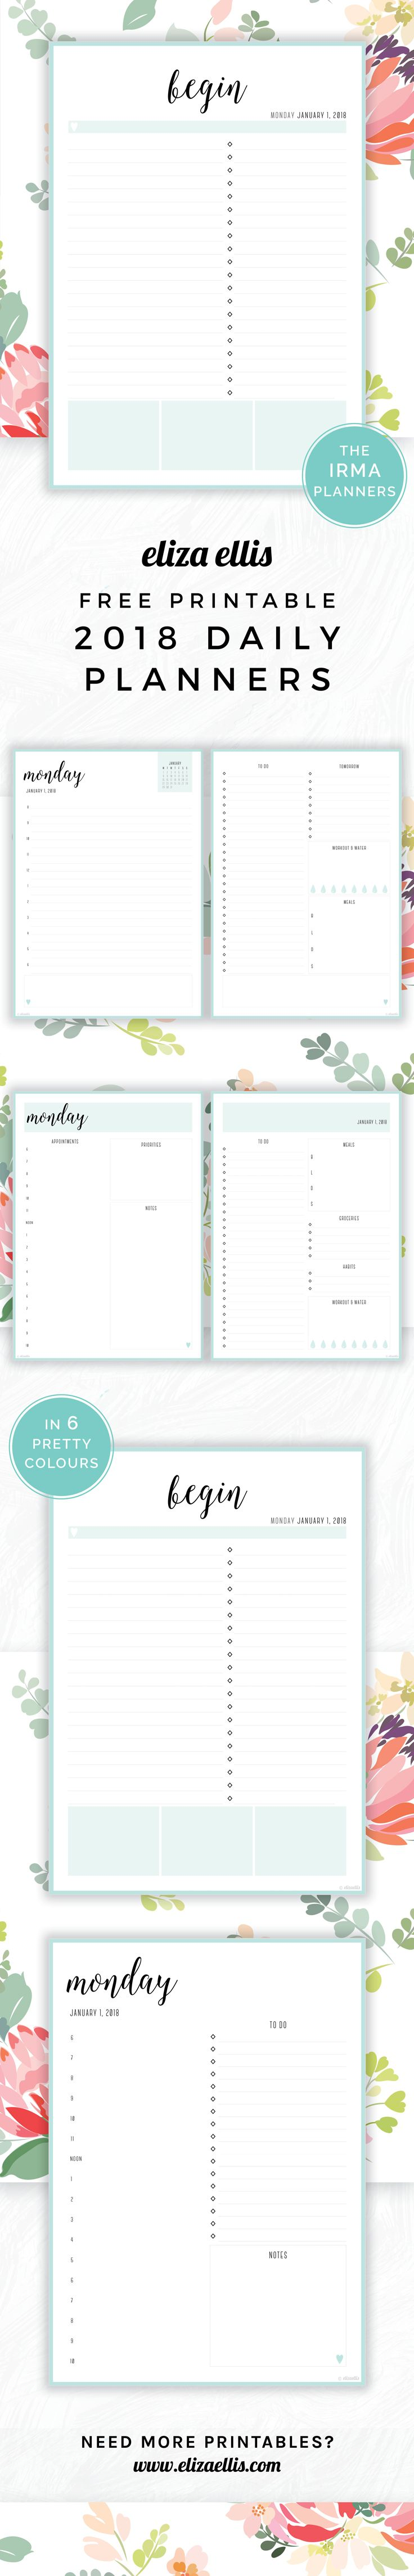 free printable 2018 irma daily planners in sea eliza ellis awesome 2018 daily planners and diaries that are absolutely free print to a4 or a5